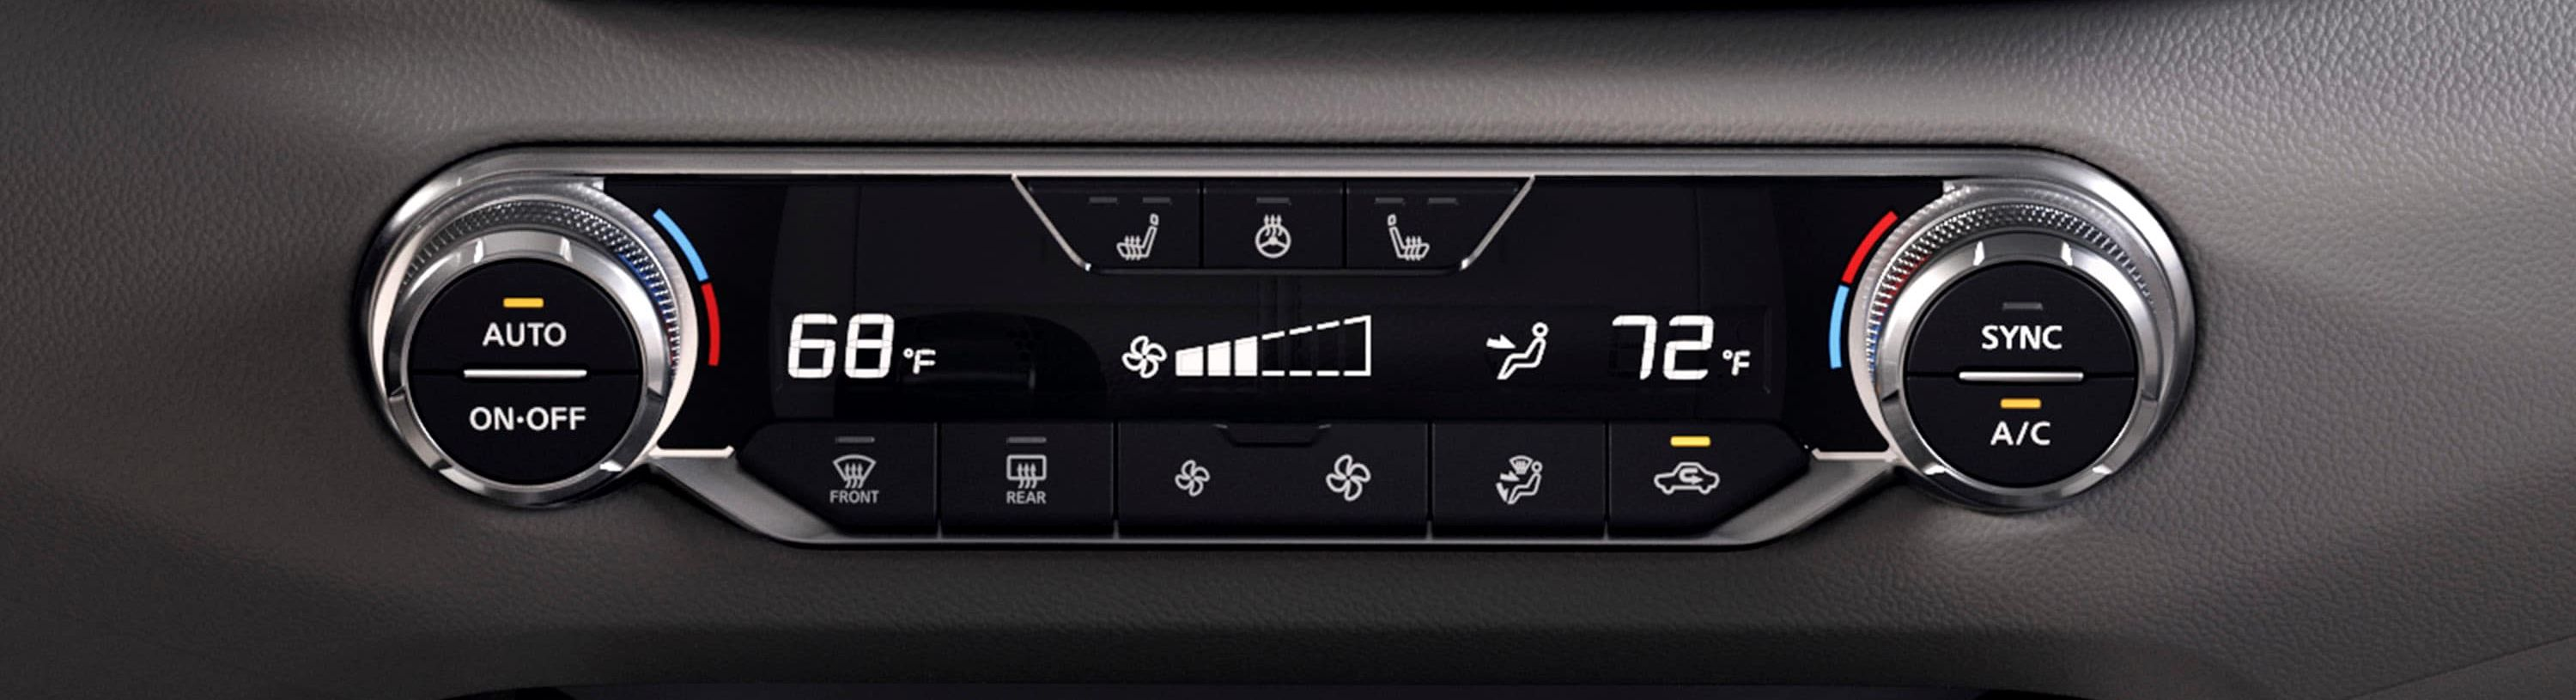 Climate Control Options!